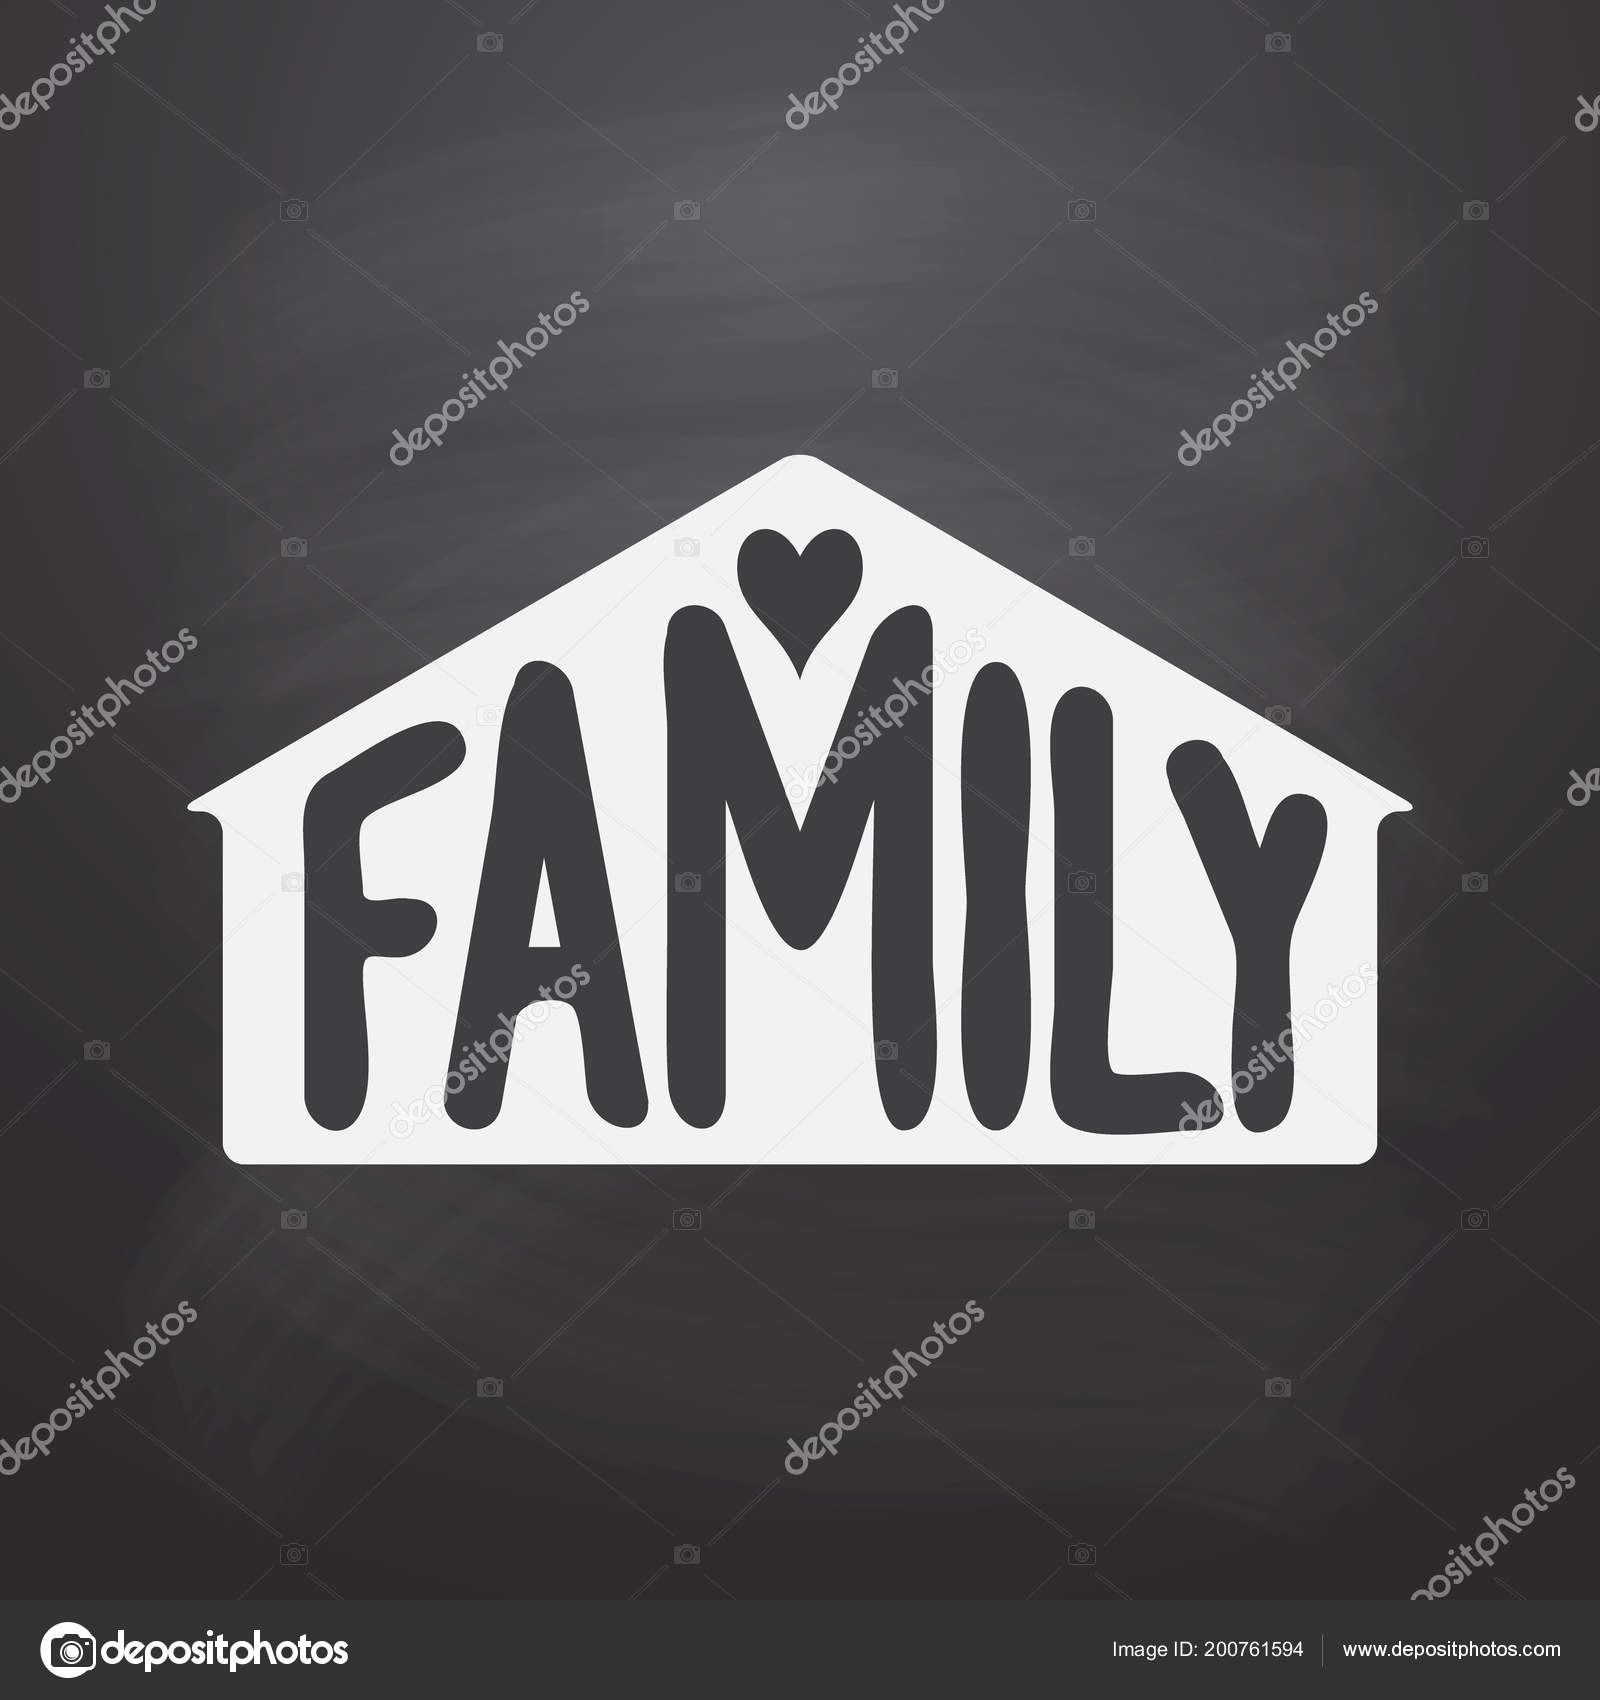 Family Hand Drawn Word House Silhouette Heart Chalkboard Background Vector Stock